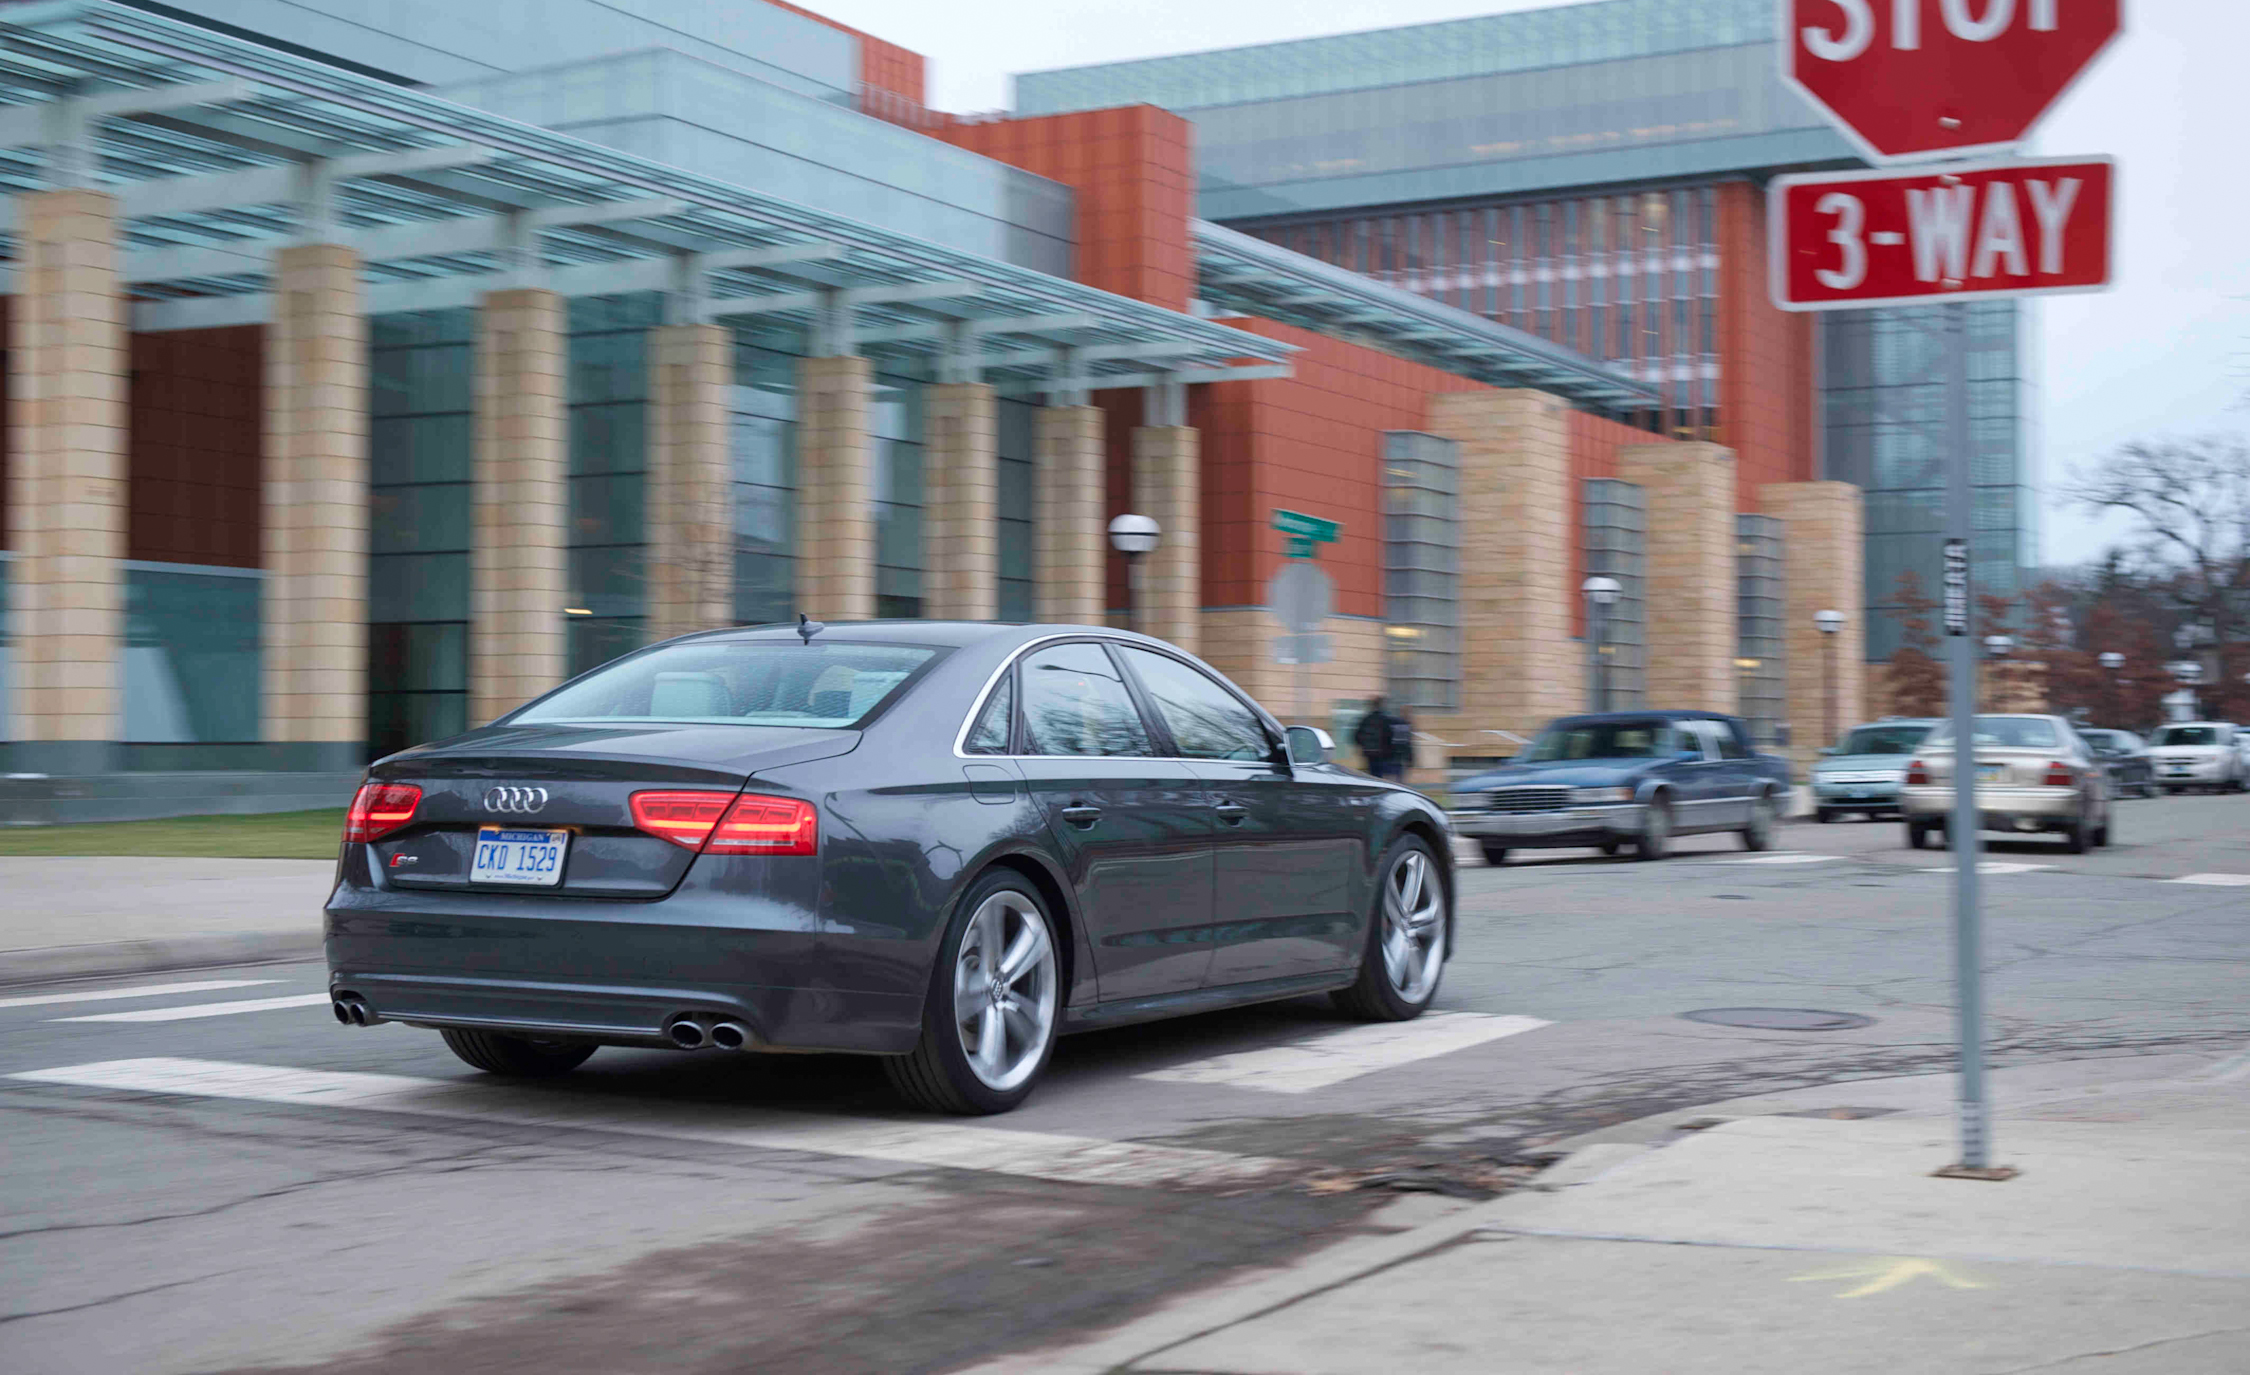 2013 Audi S8 Test Drive Rear View (View 5 of 25)